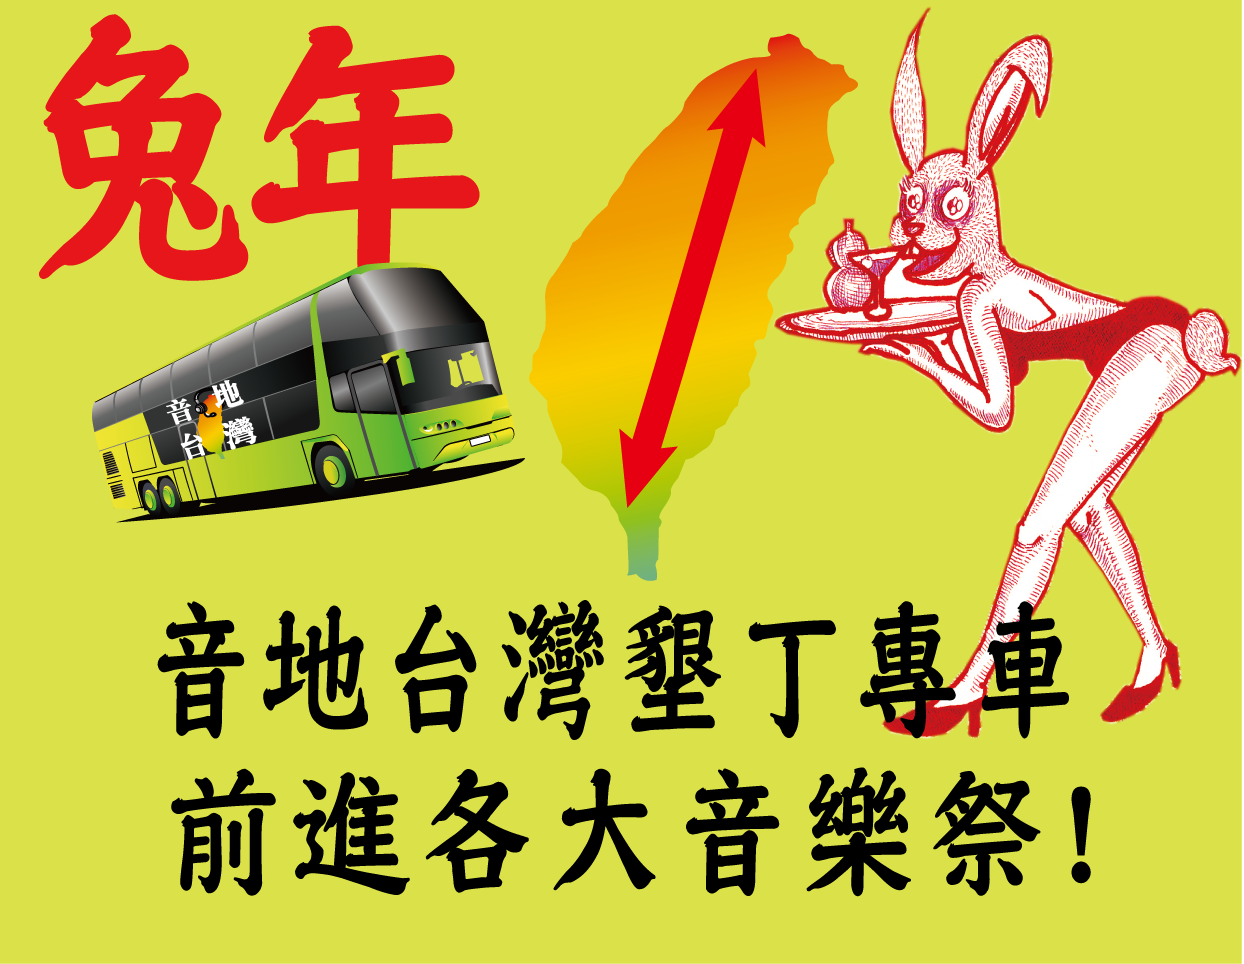 rabbit bus dm 2222.png